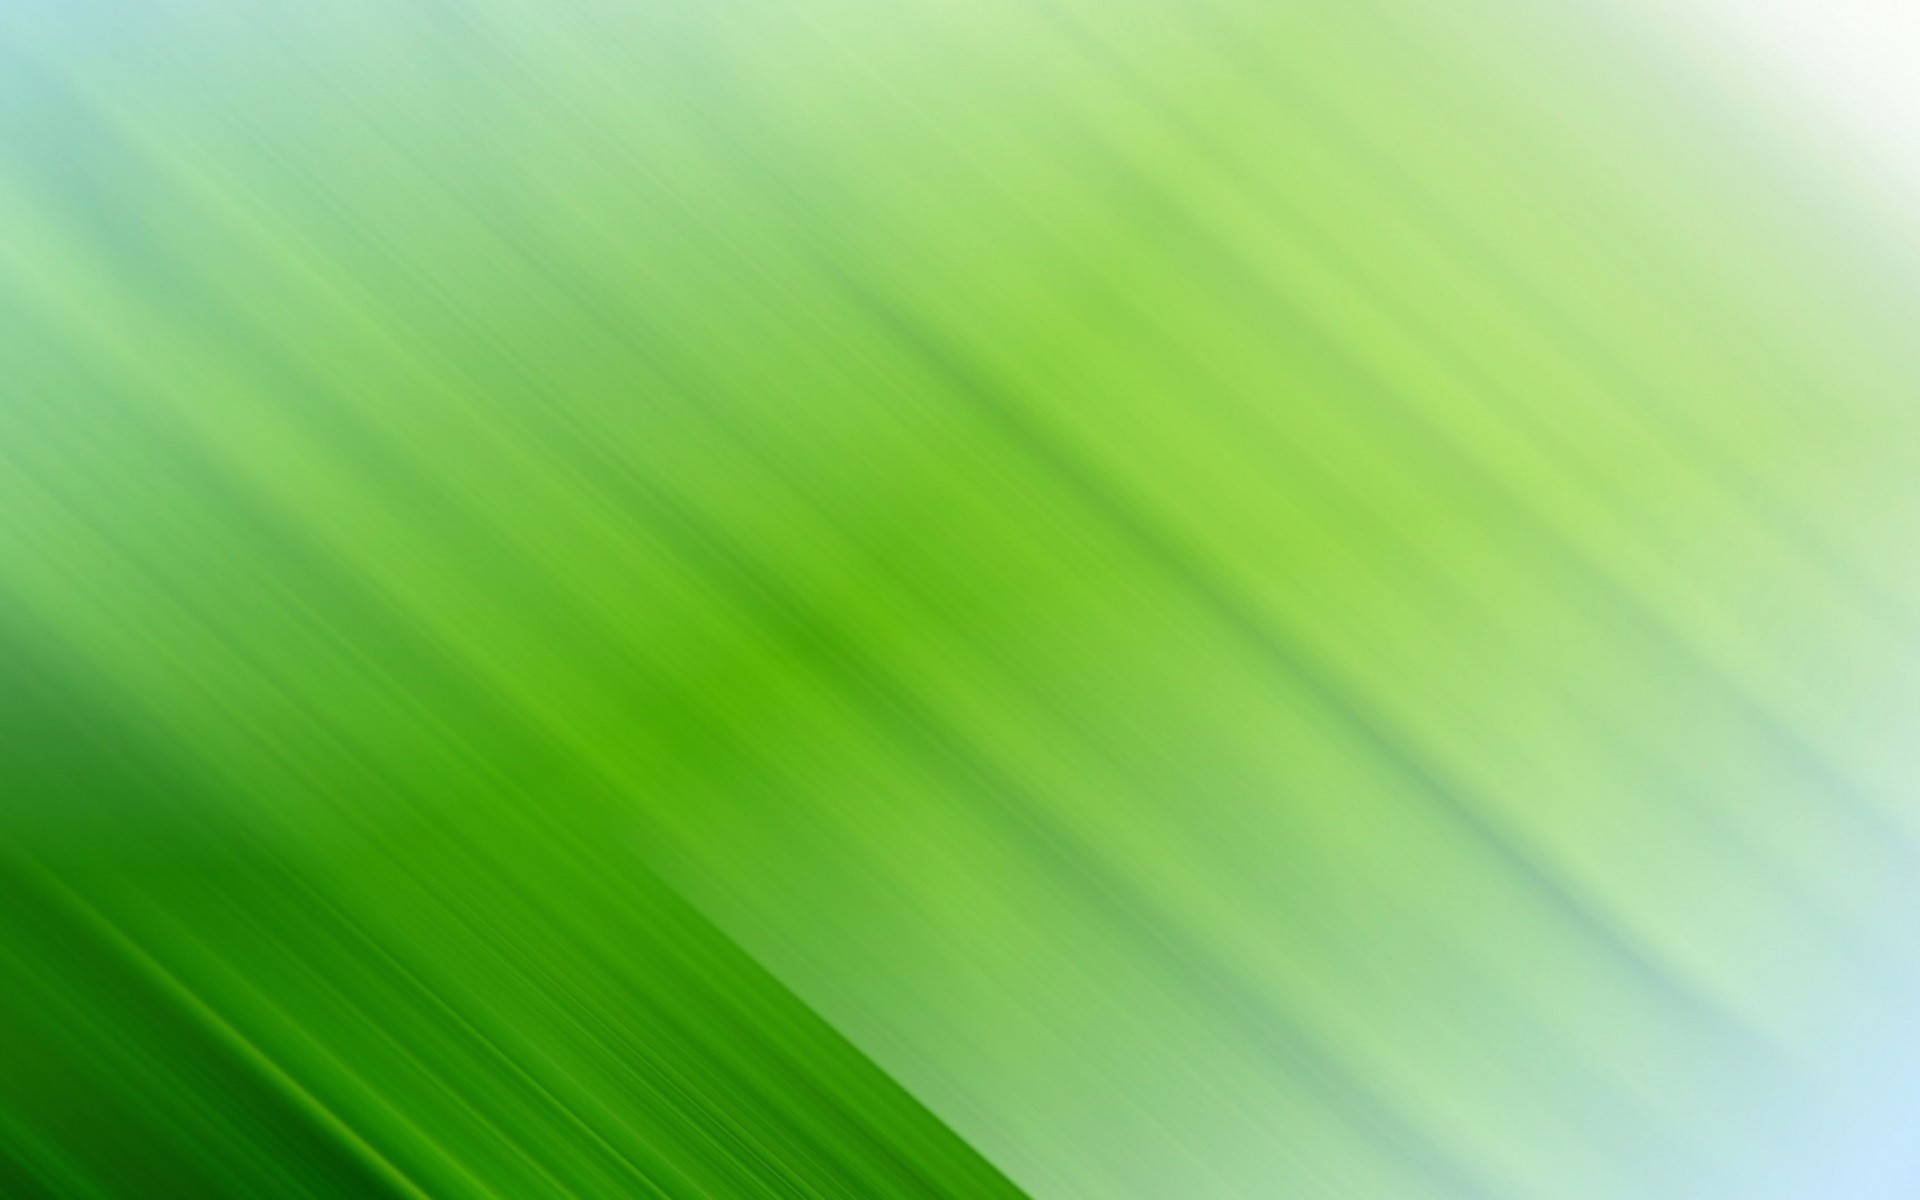 4K Green Wallpapers High Quality